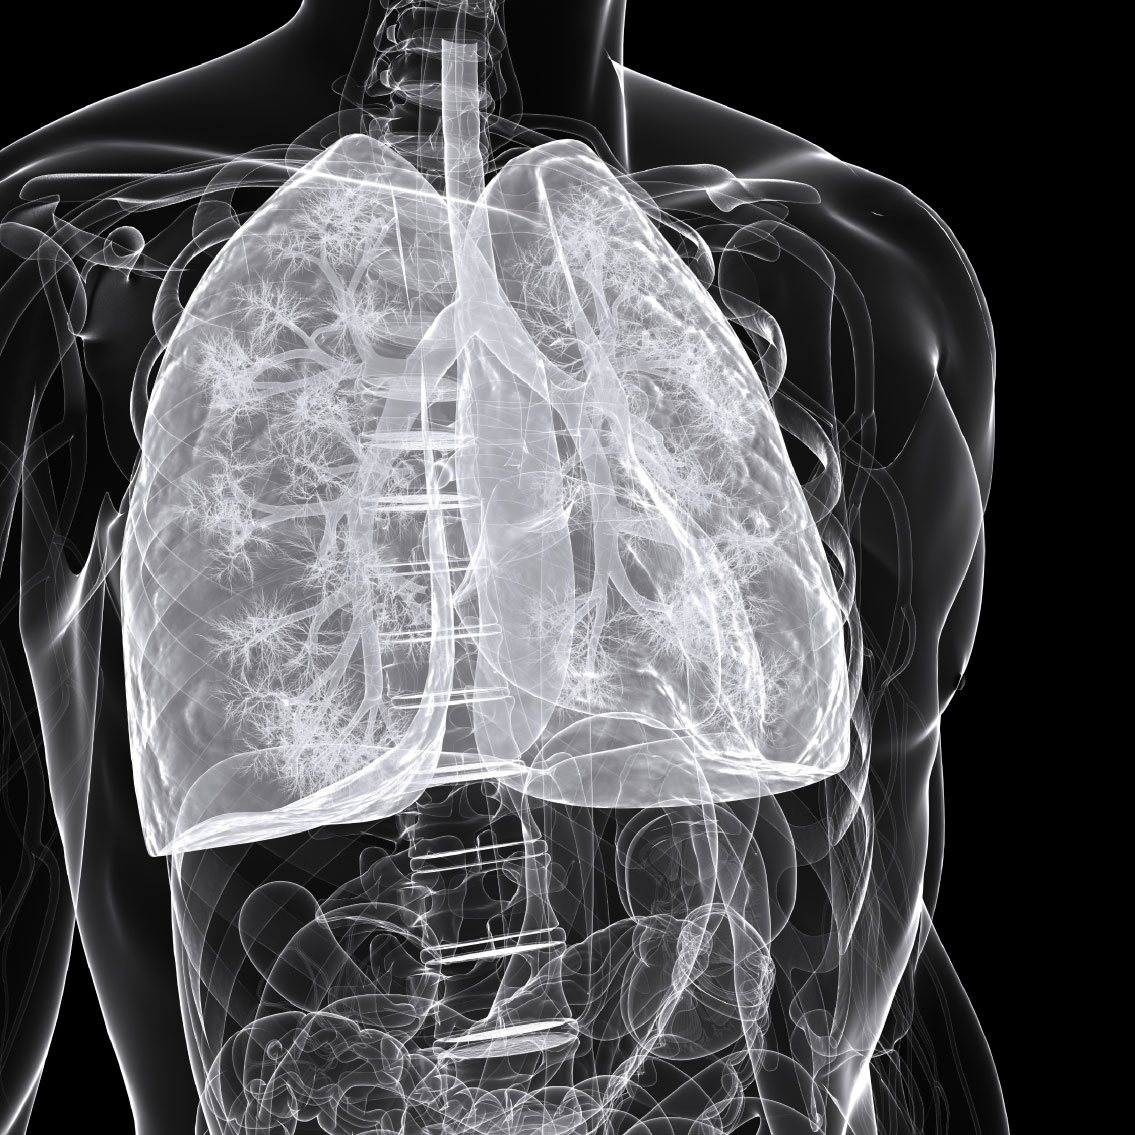 Keytruda Shows Benefit in Small Cell Lung Cancer